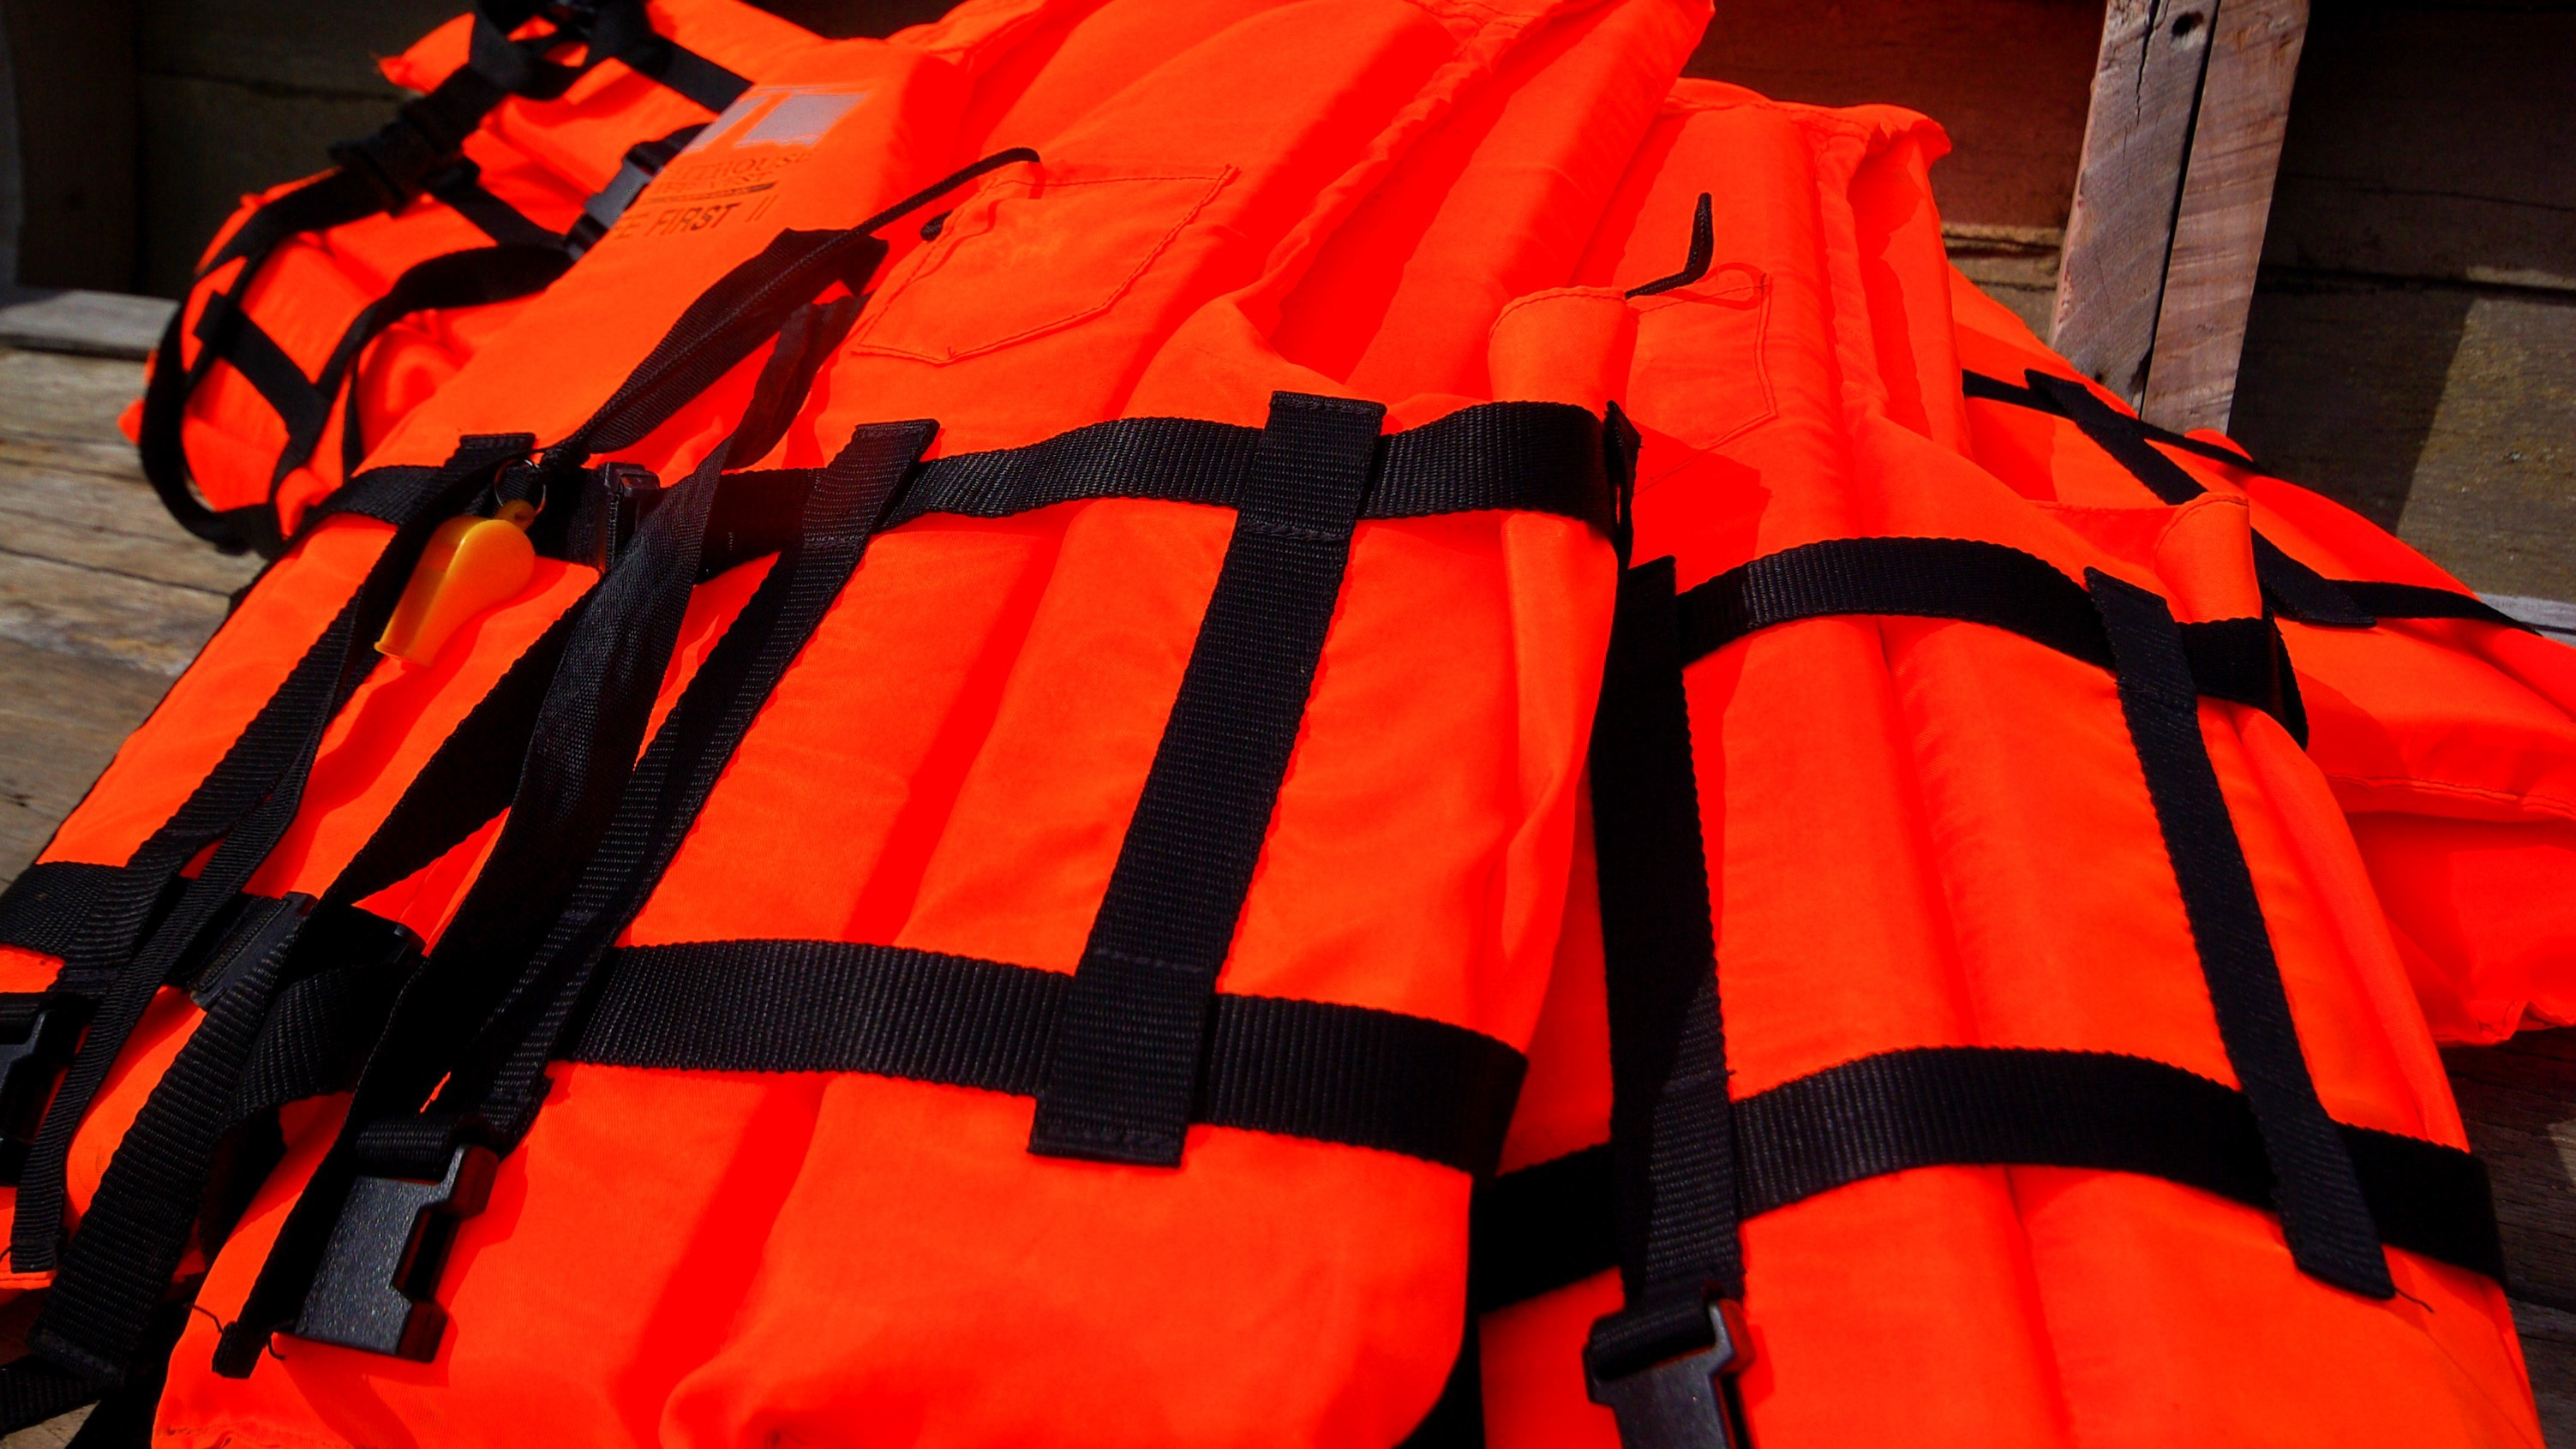 Life Jacket Suit On Boat Hdcbc Bk Hzg